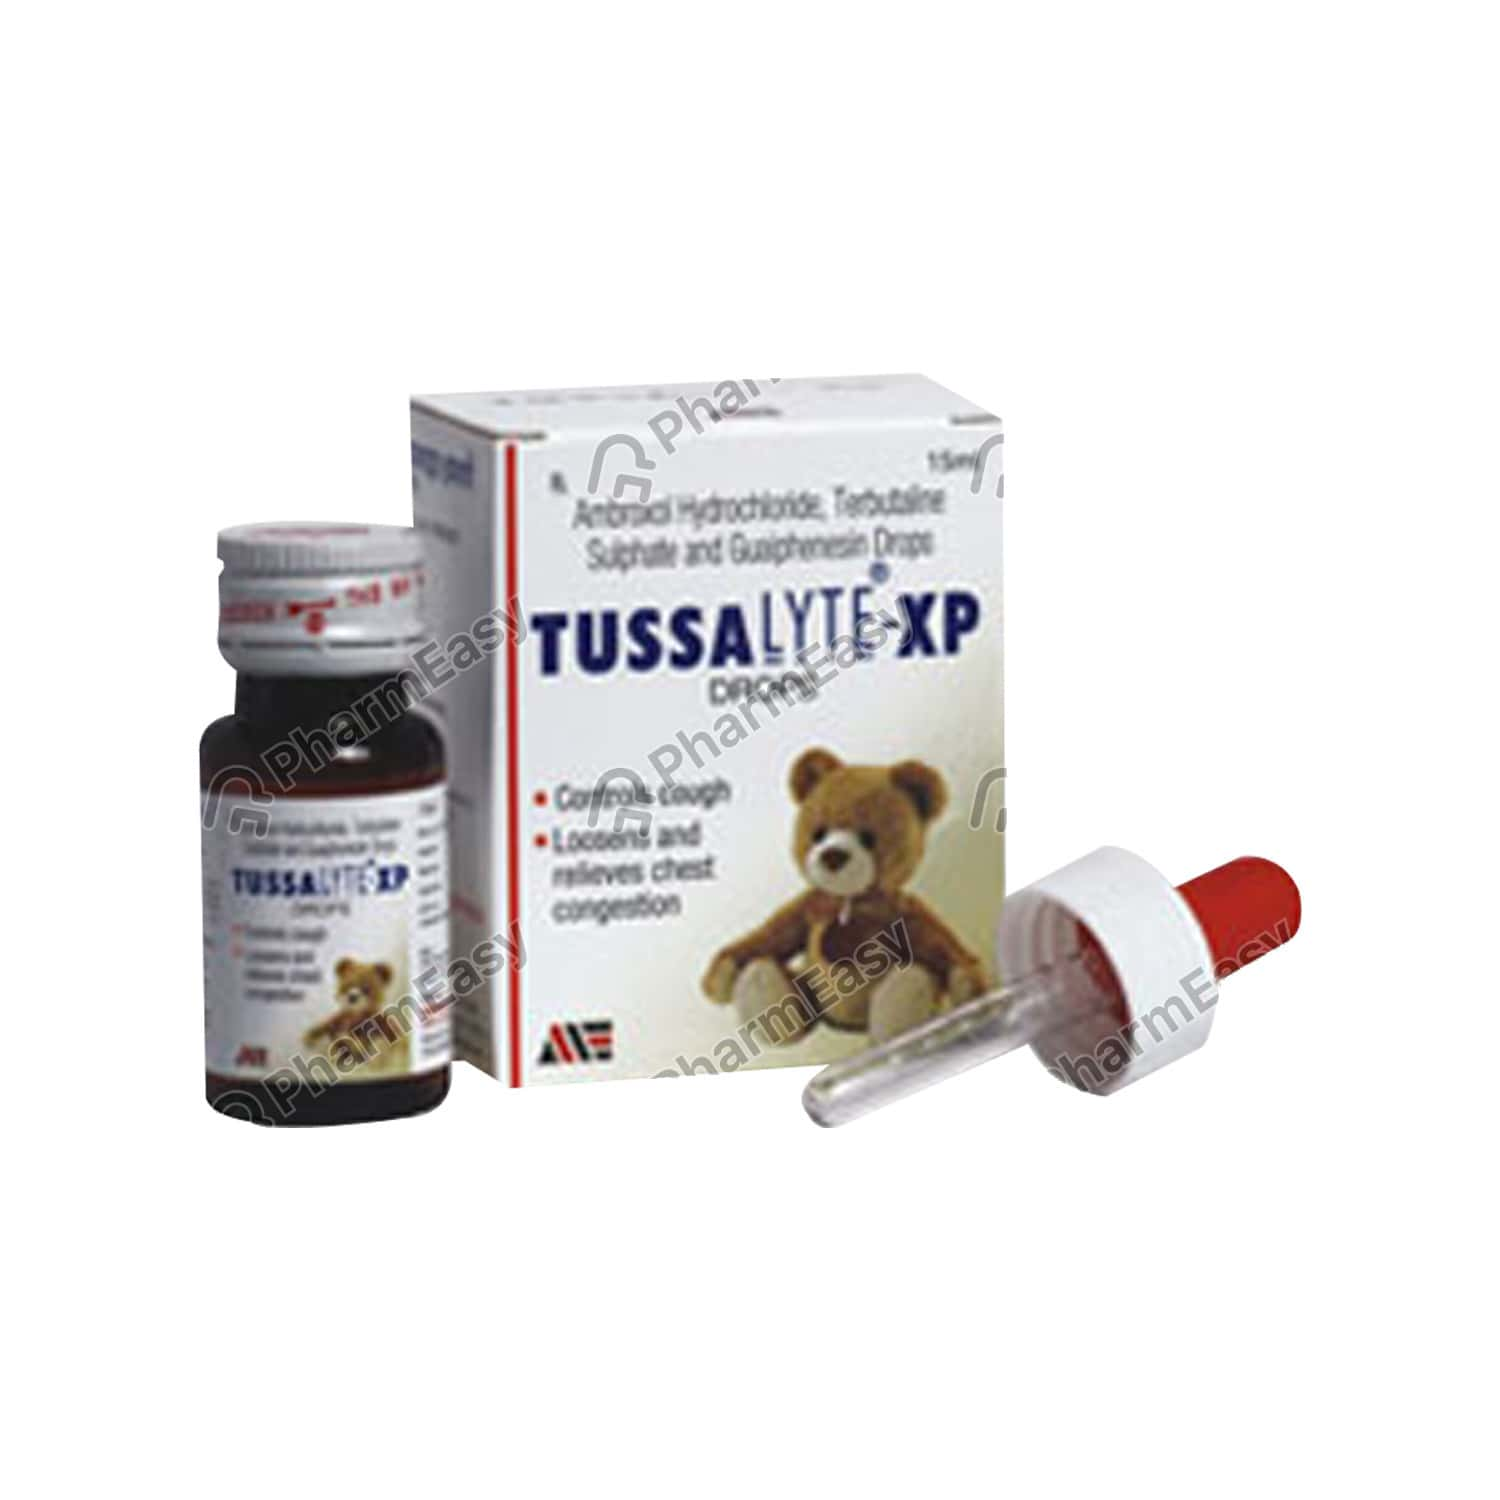 Tussalyte Xp Drops 15ml